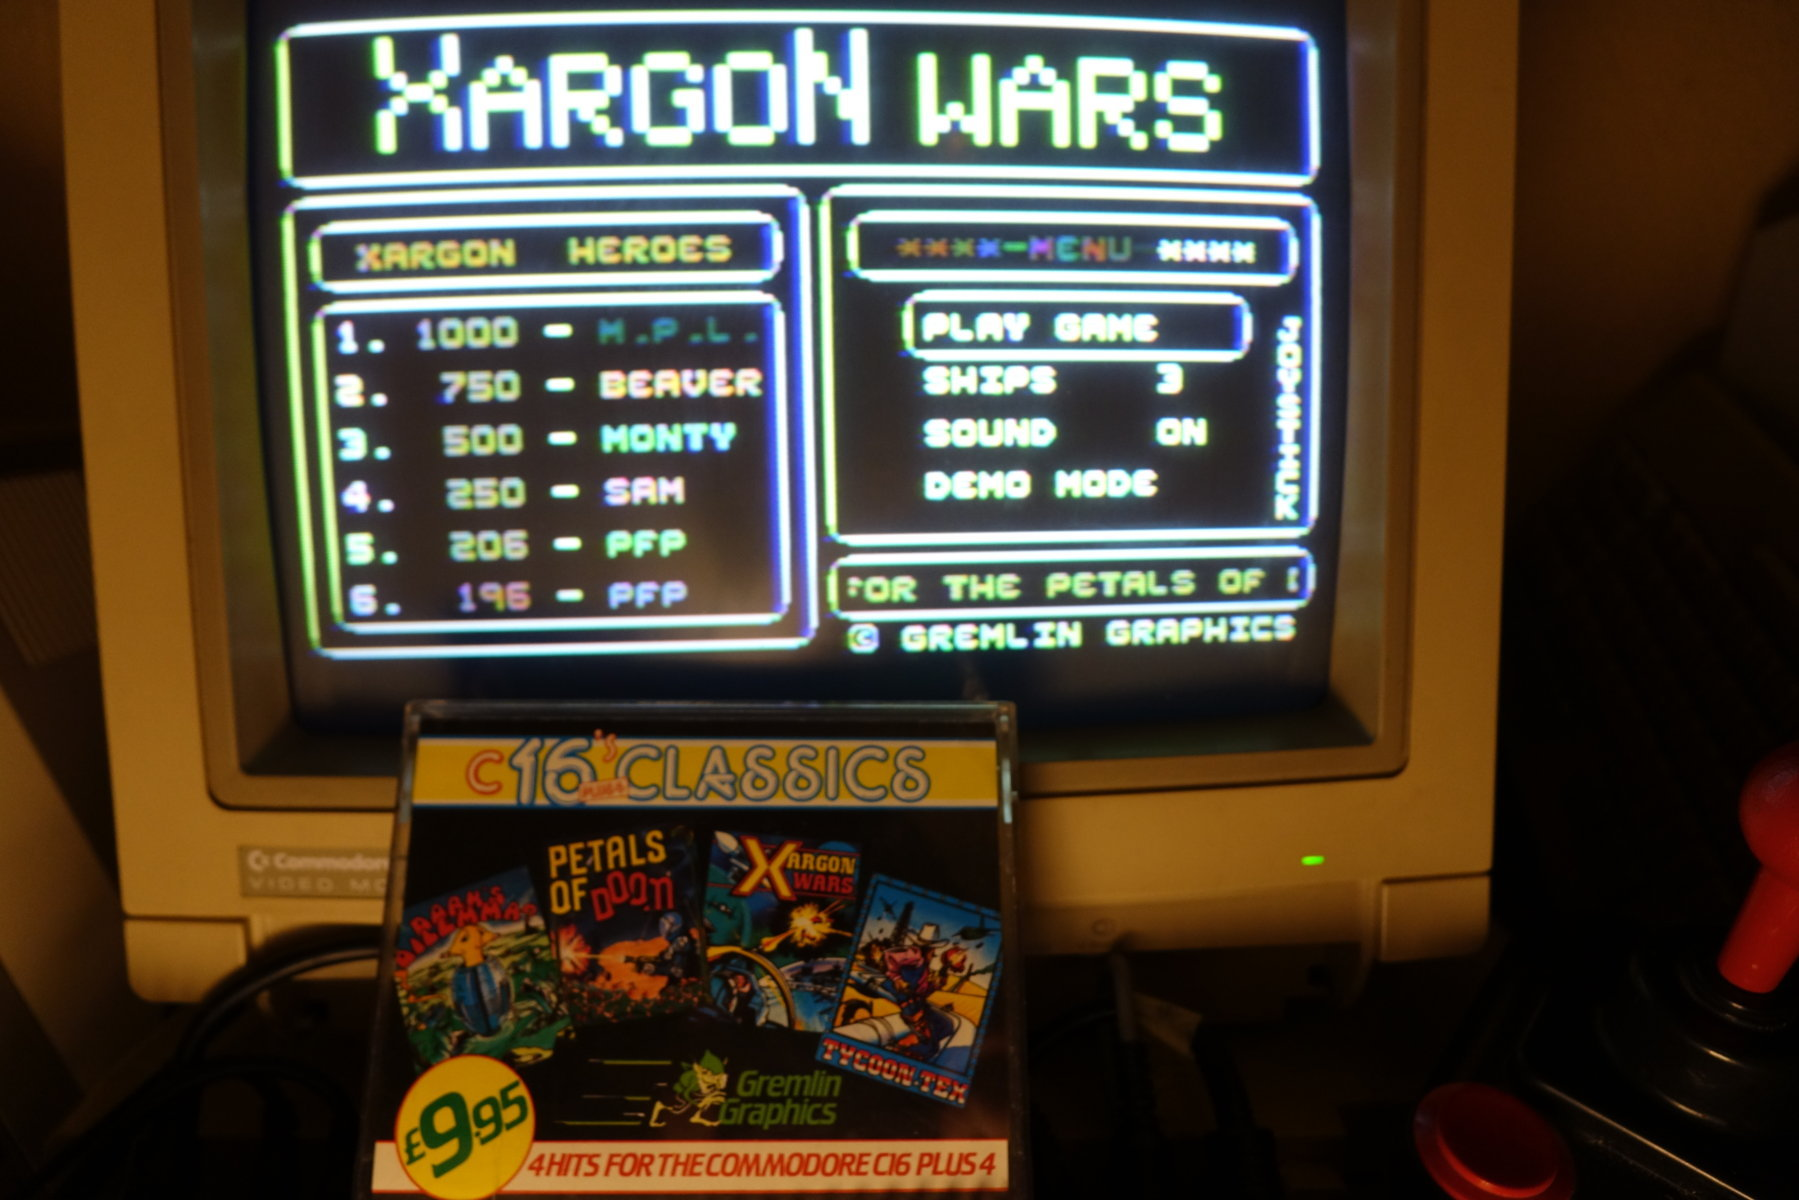 Xargon Wars 206 points